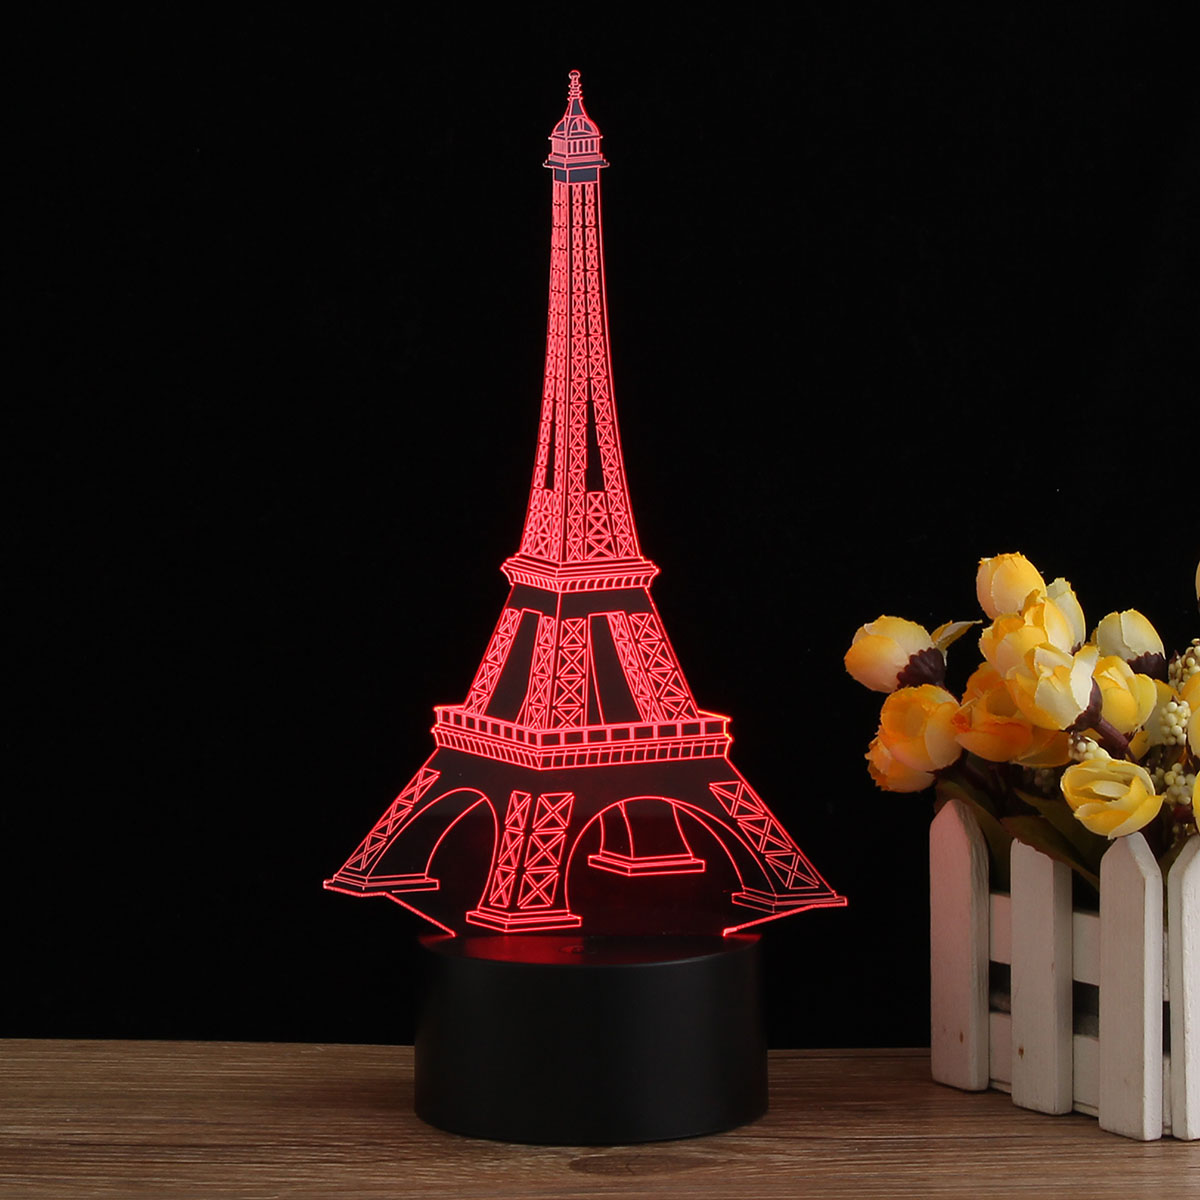 3D Visual USB LED Eiffel <font><b>Tower</b></font> Shape Night Light Color Changing Table Desk Lamp Colorful Novelty Lighting Party Home Decor